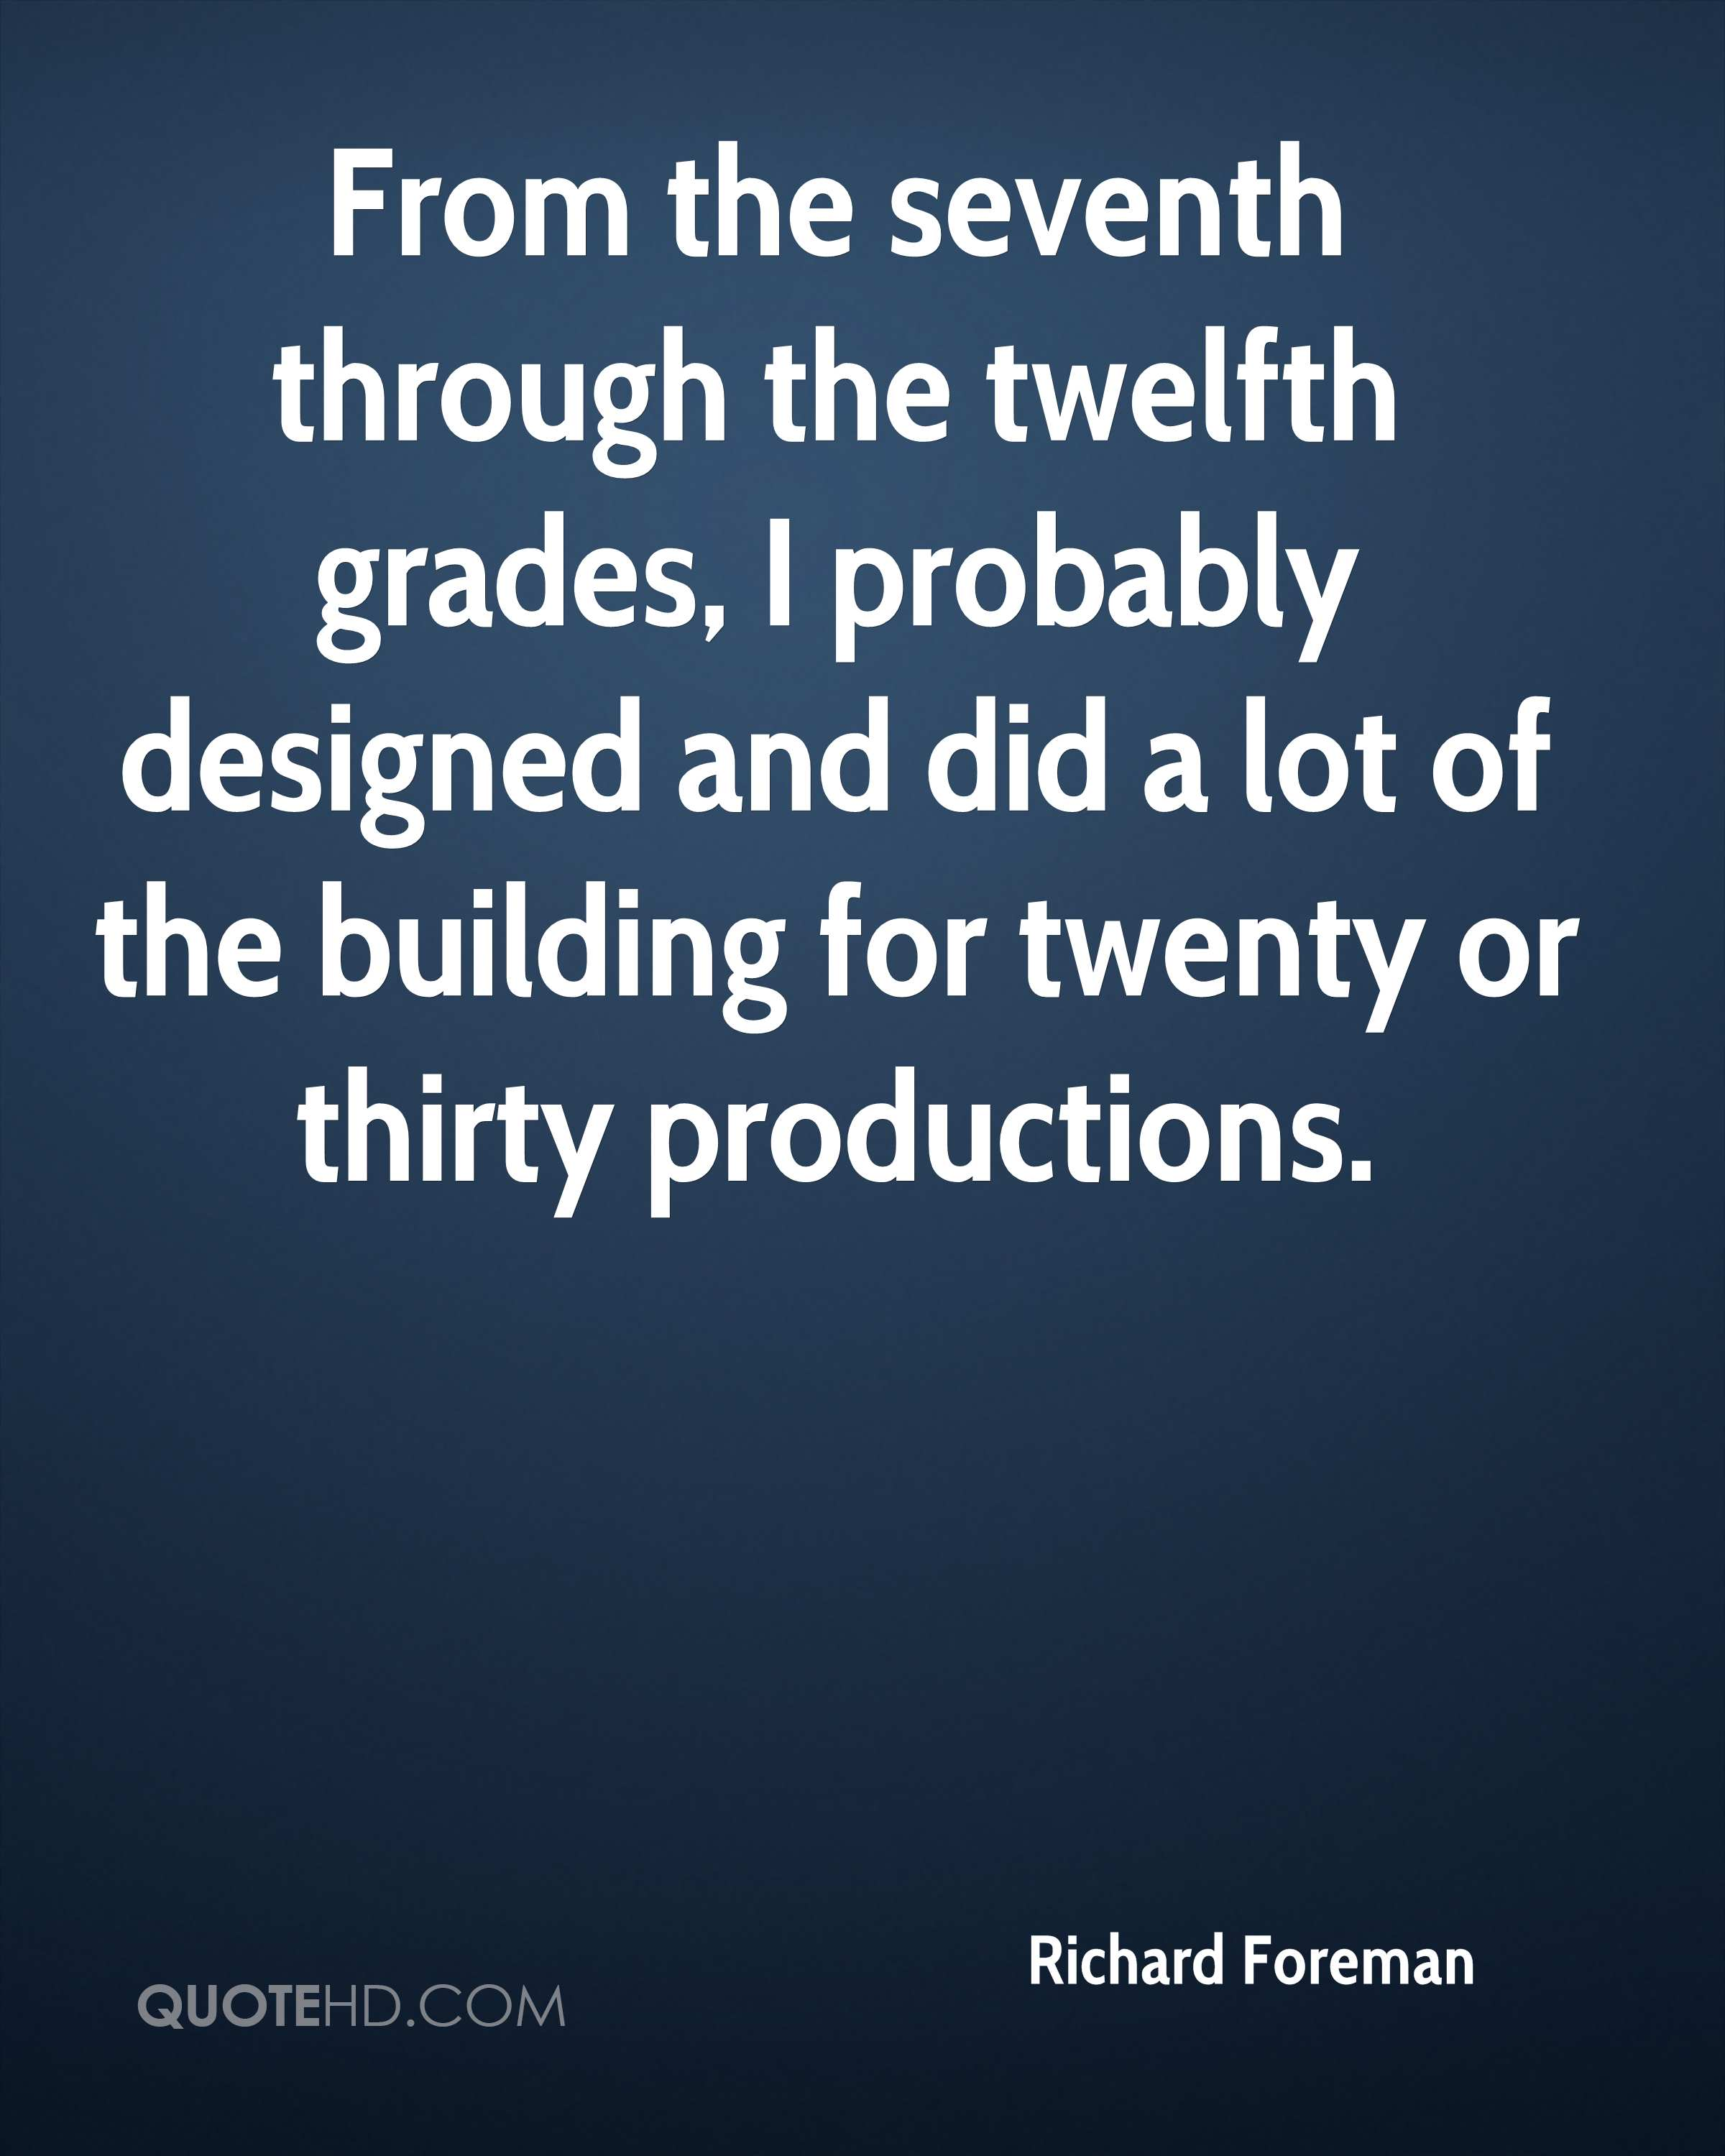 From the seventh through the twelfth grades, I probably designed and did a lot of the building for twenty or thirty productions.